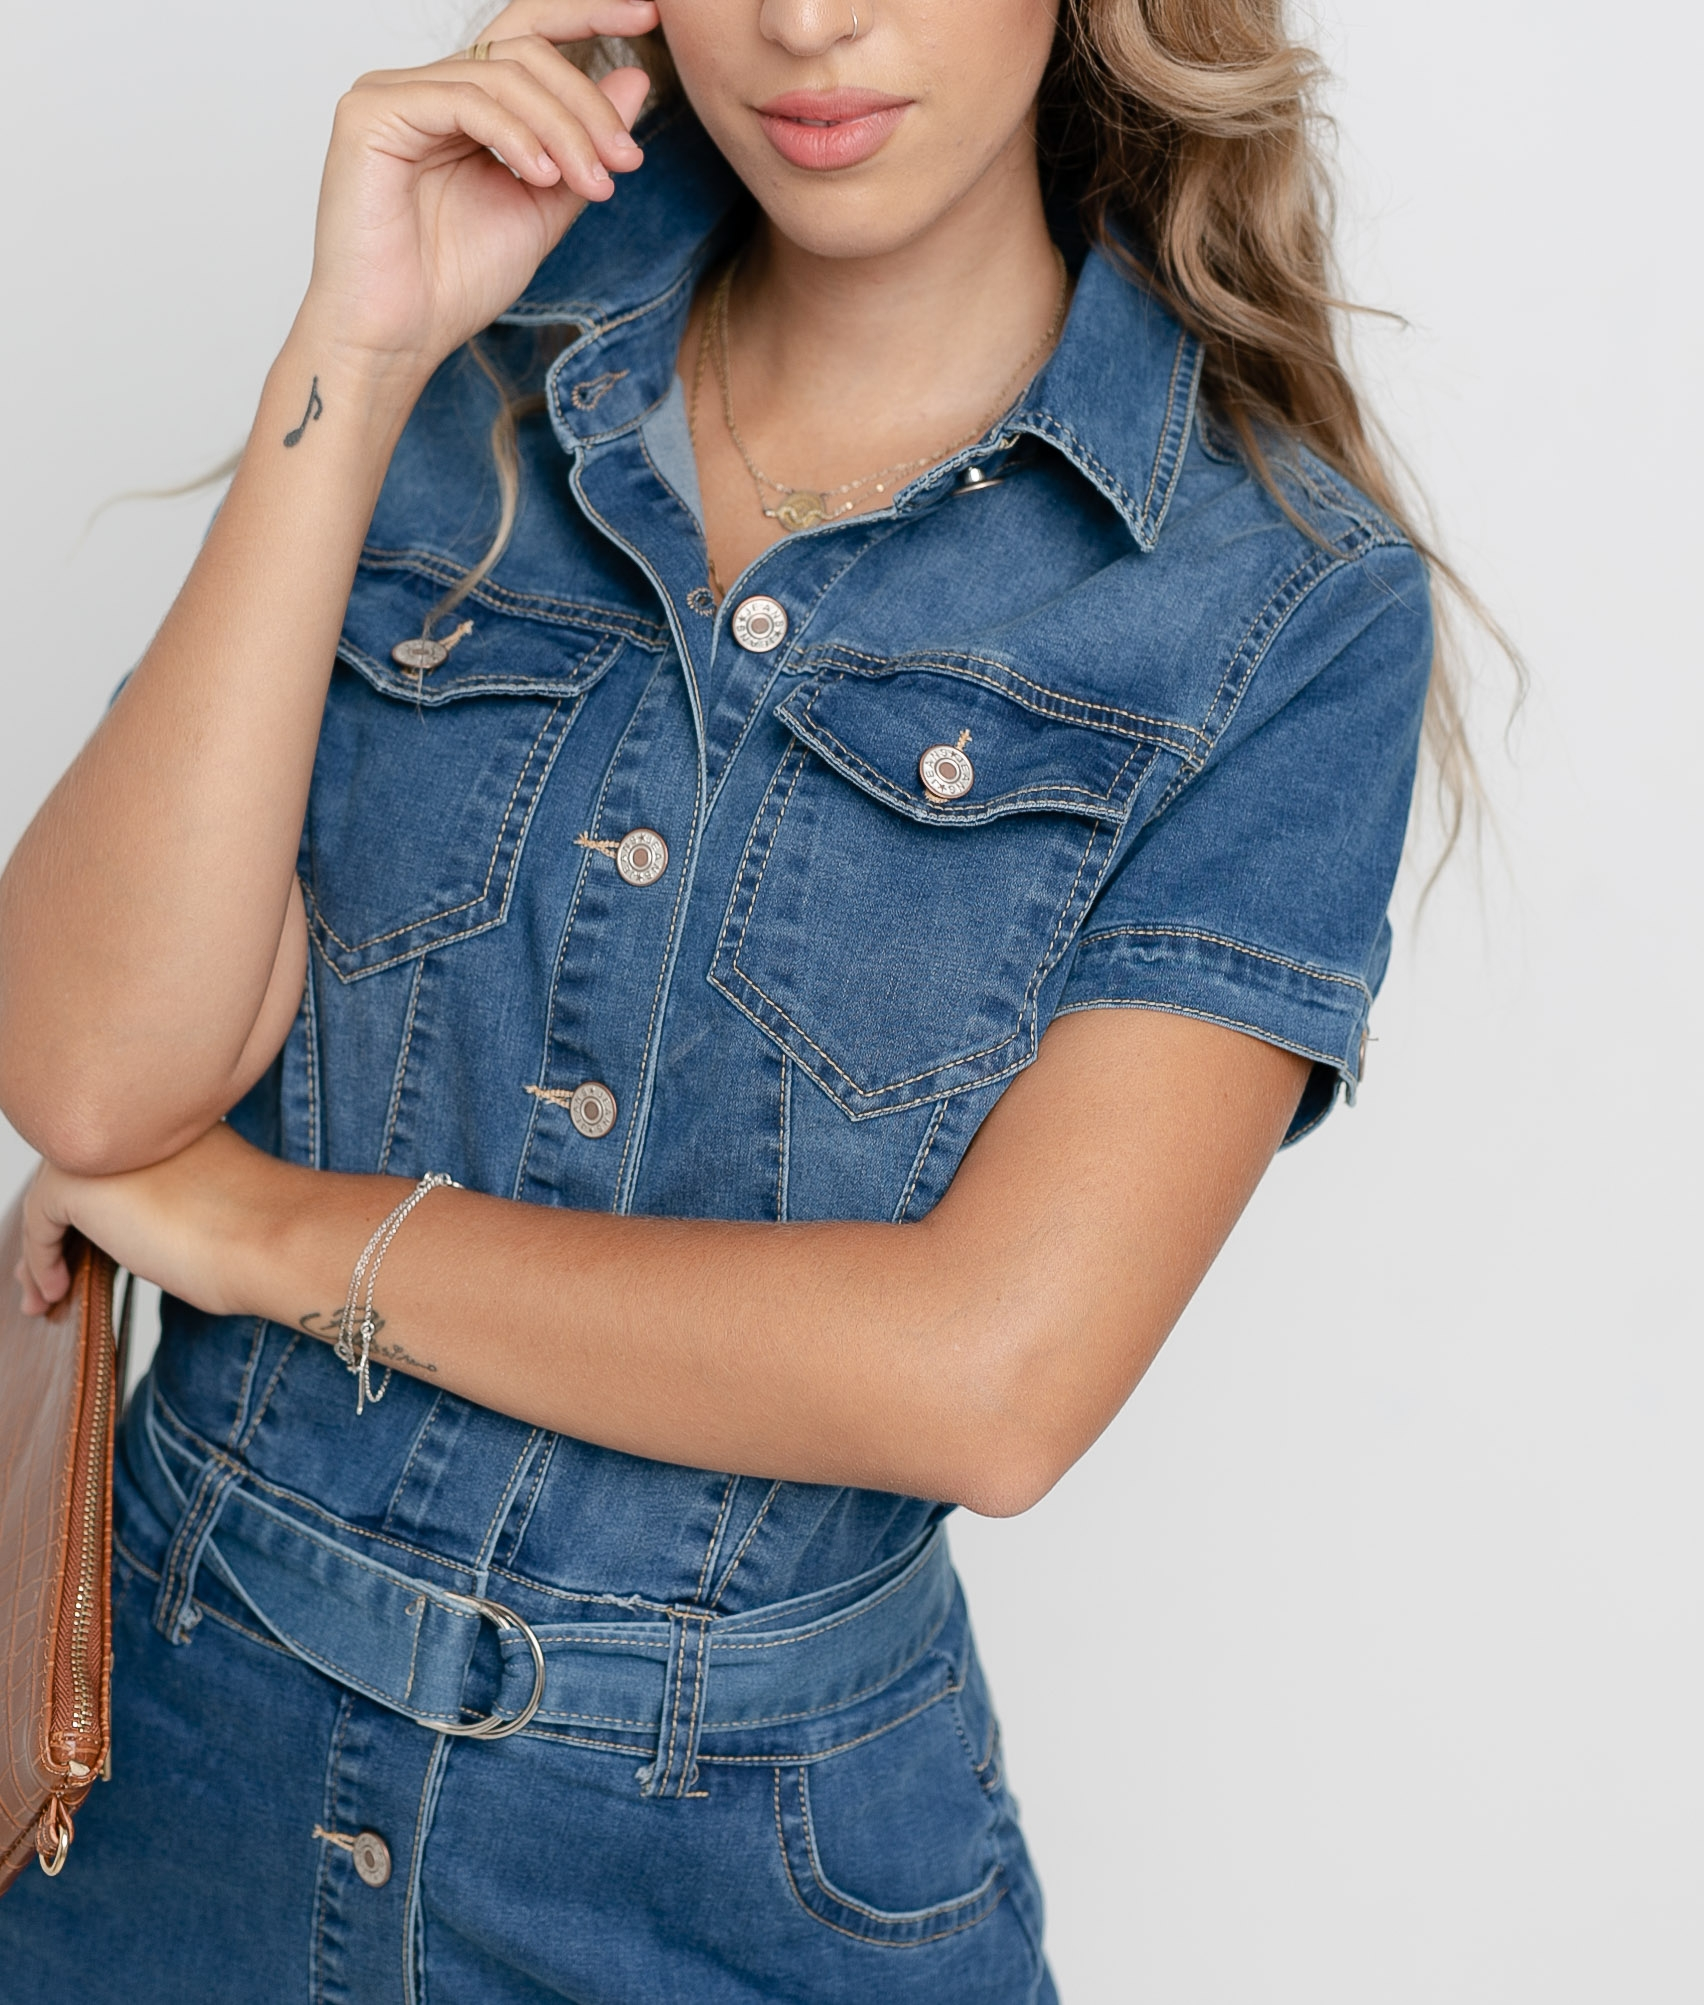 ROBE PROTES - DENIM